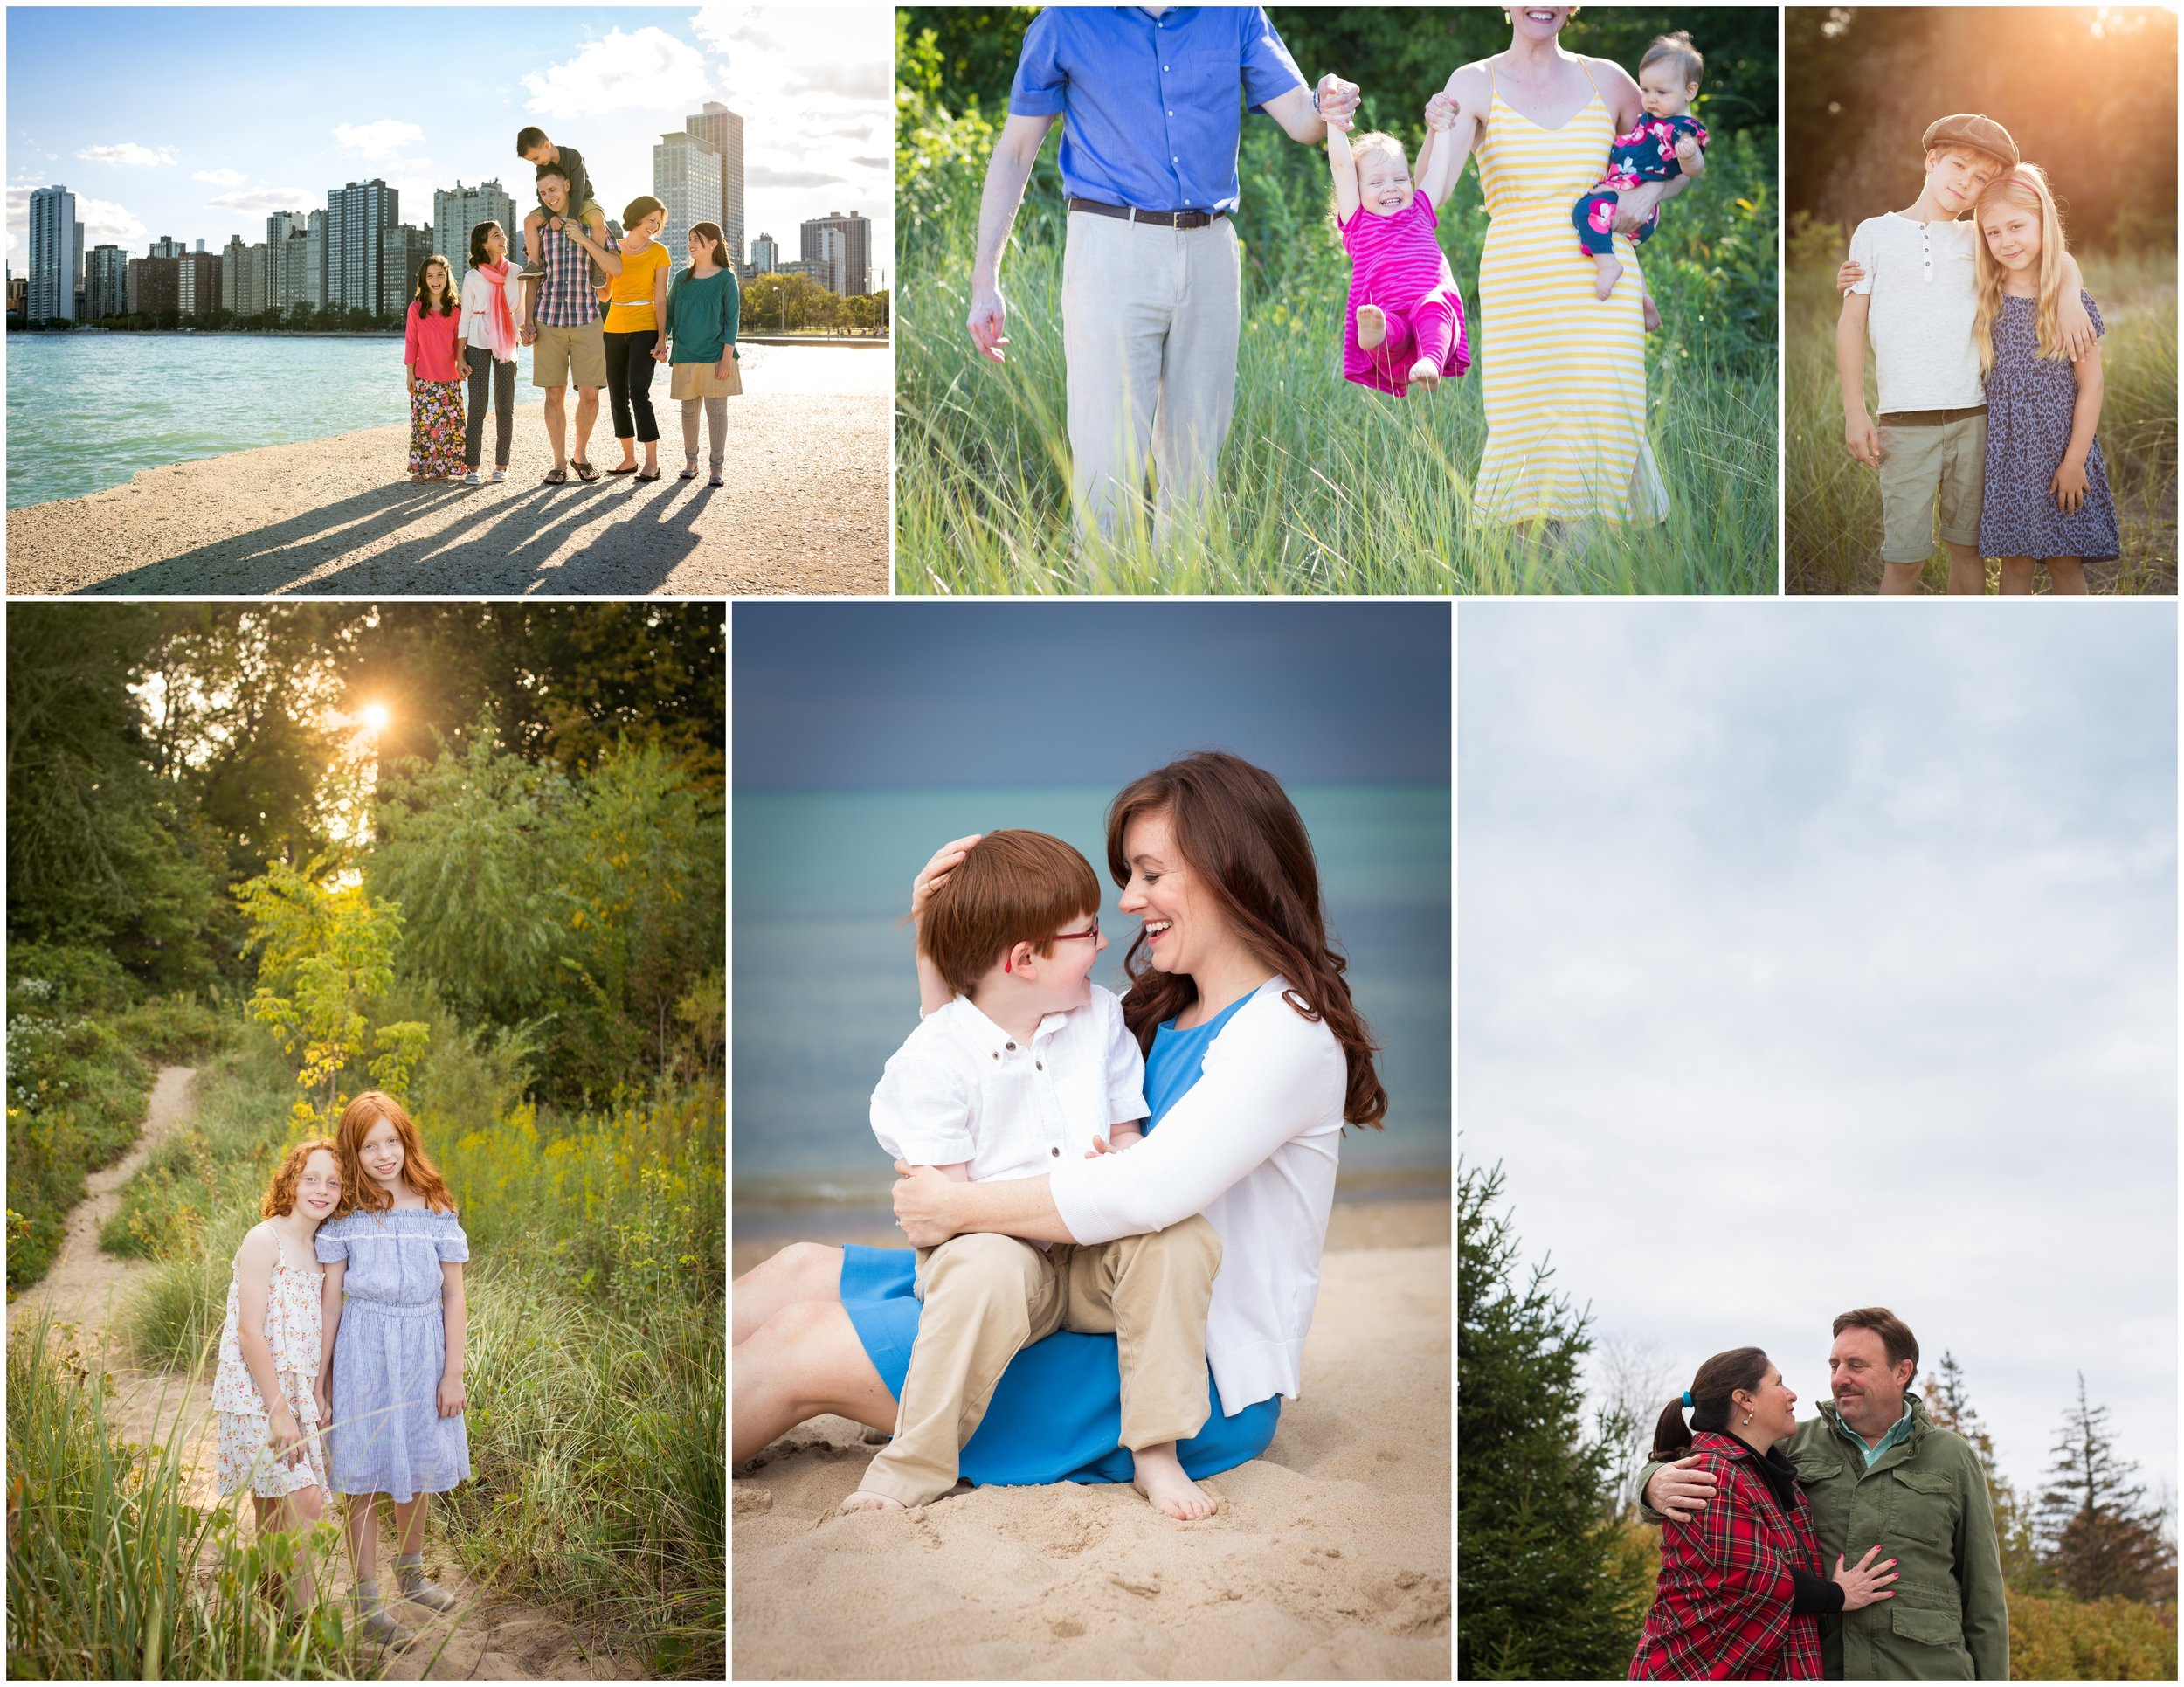 Outdoor family portraits I've taken over the years